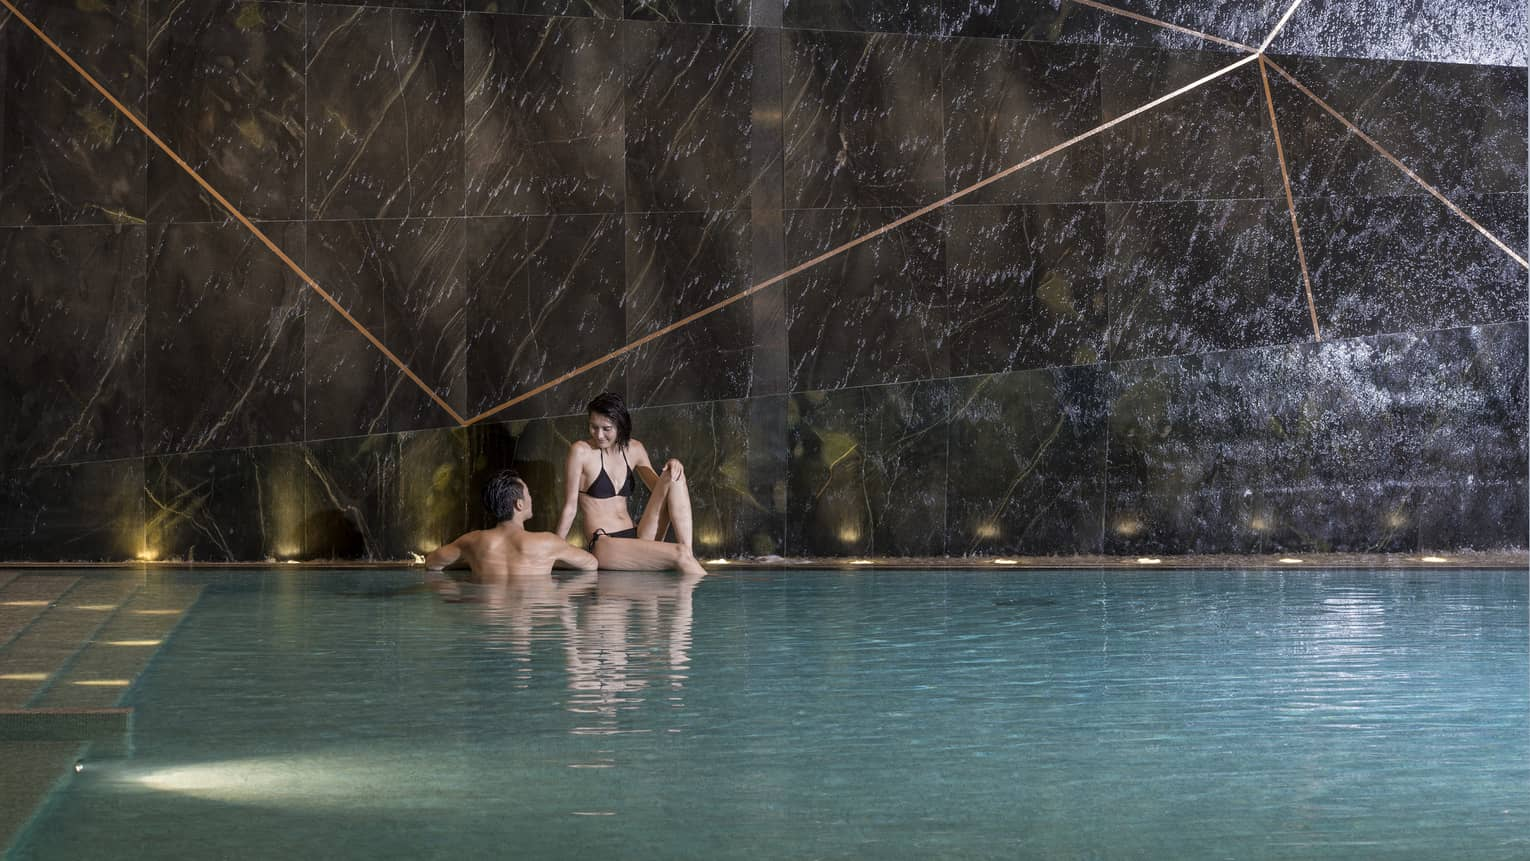 Woman sits on edge of indoor swimming pool, man wades beside her